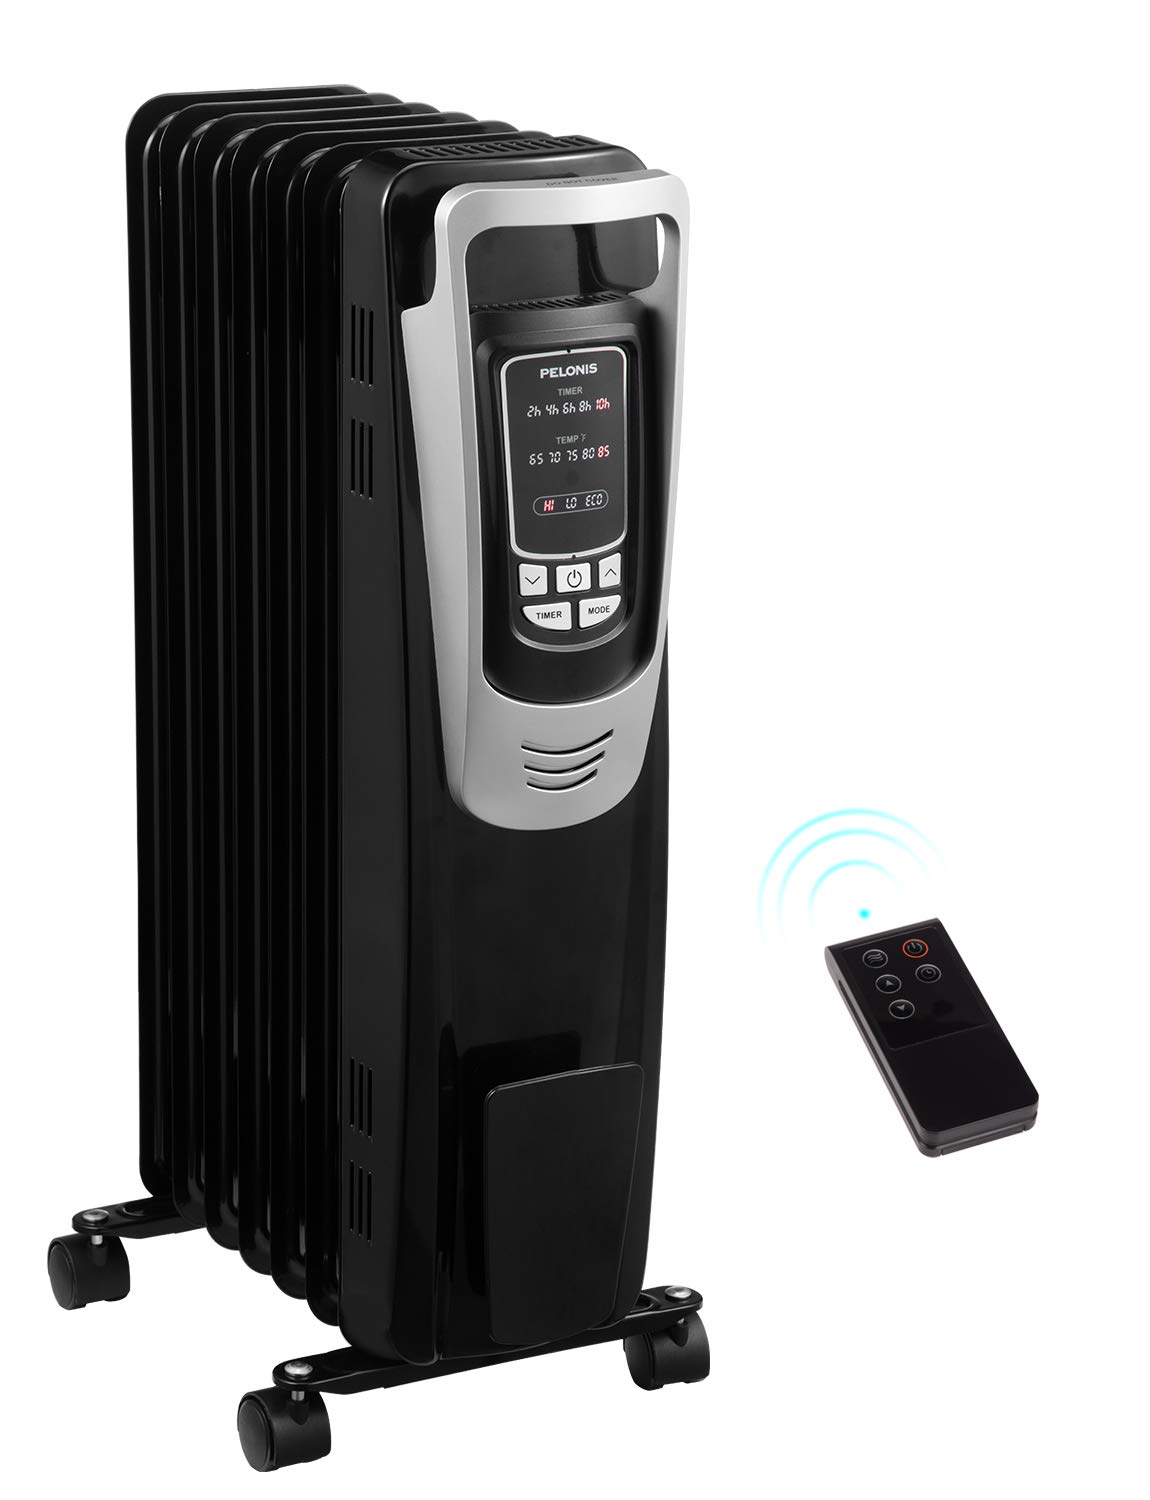 Top 6 Best Space Heater For Large Room Reviews in 2020 6